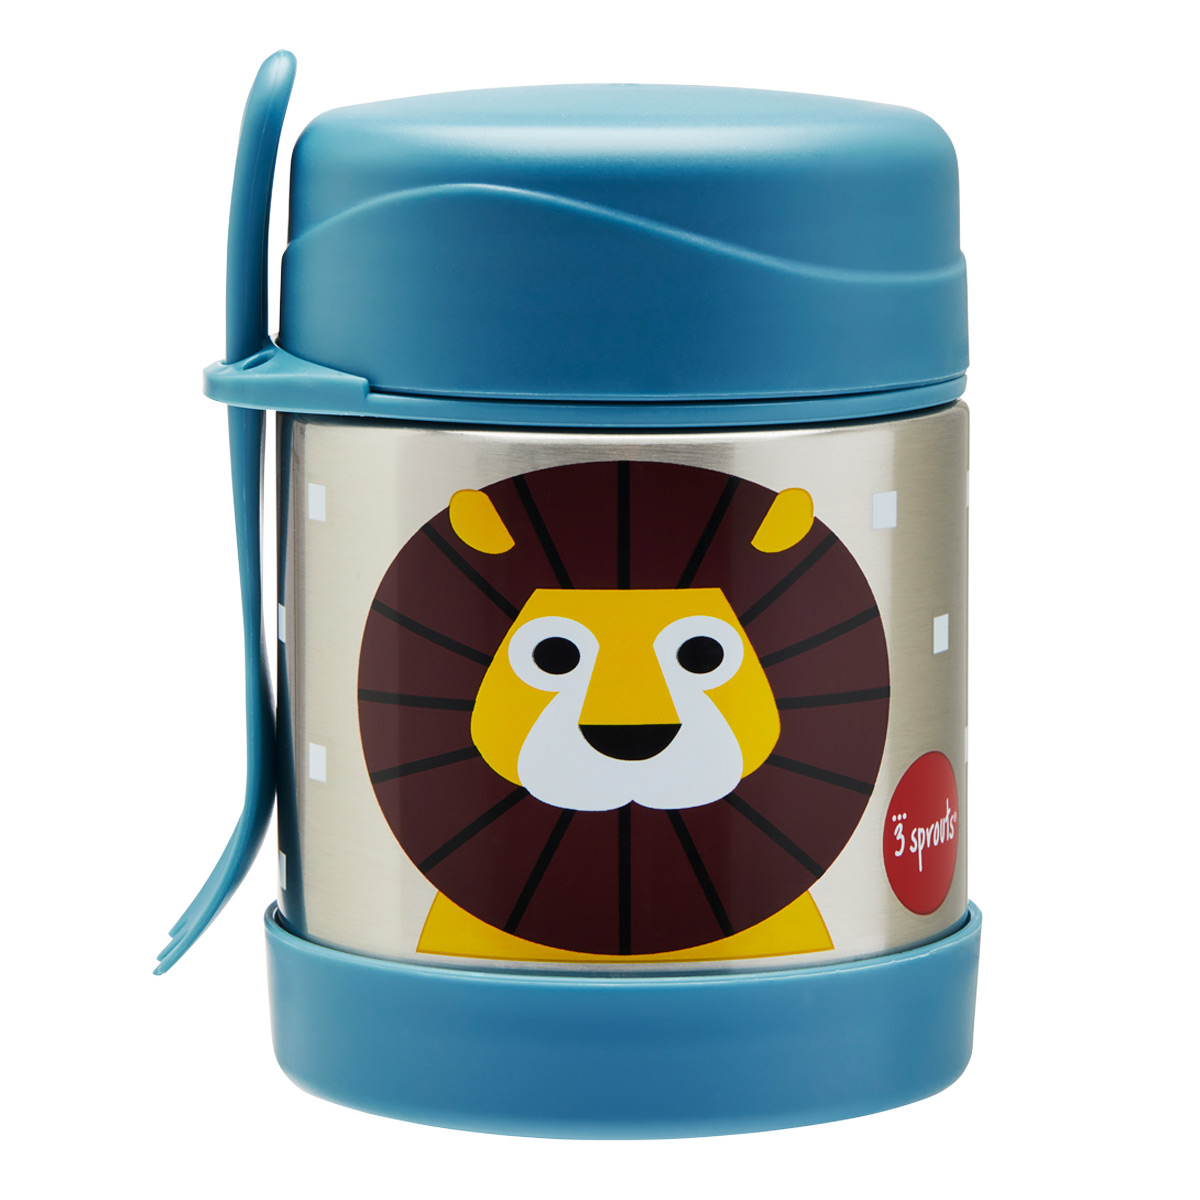 3 Sprouts Lion Insulated Food Jar